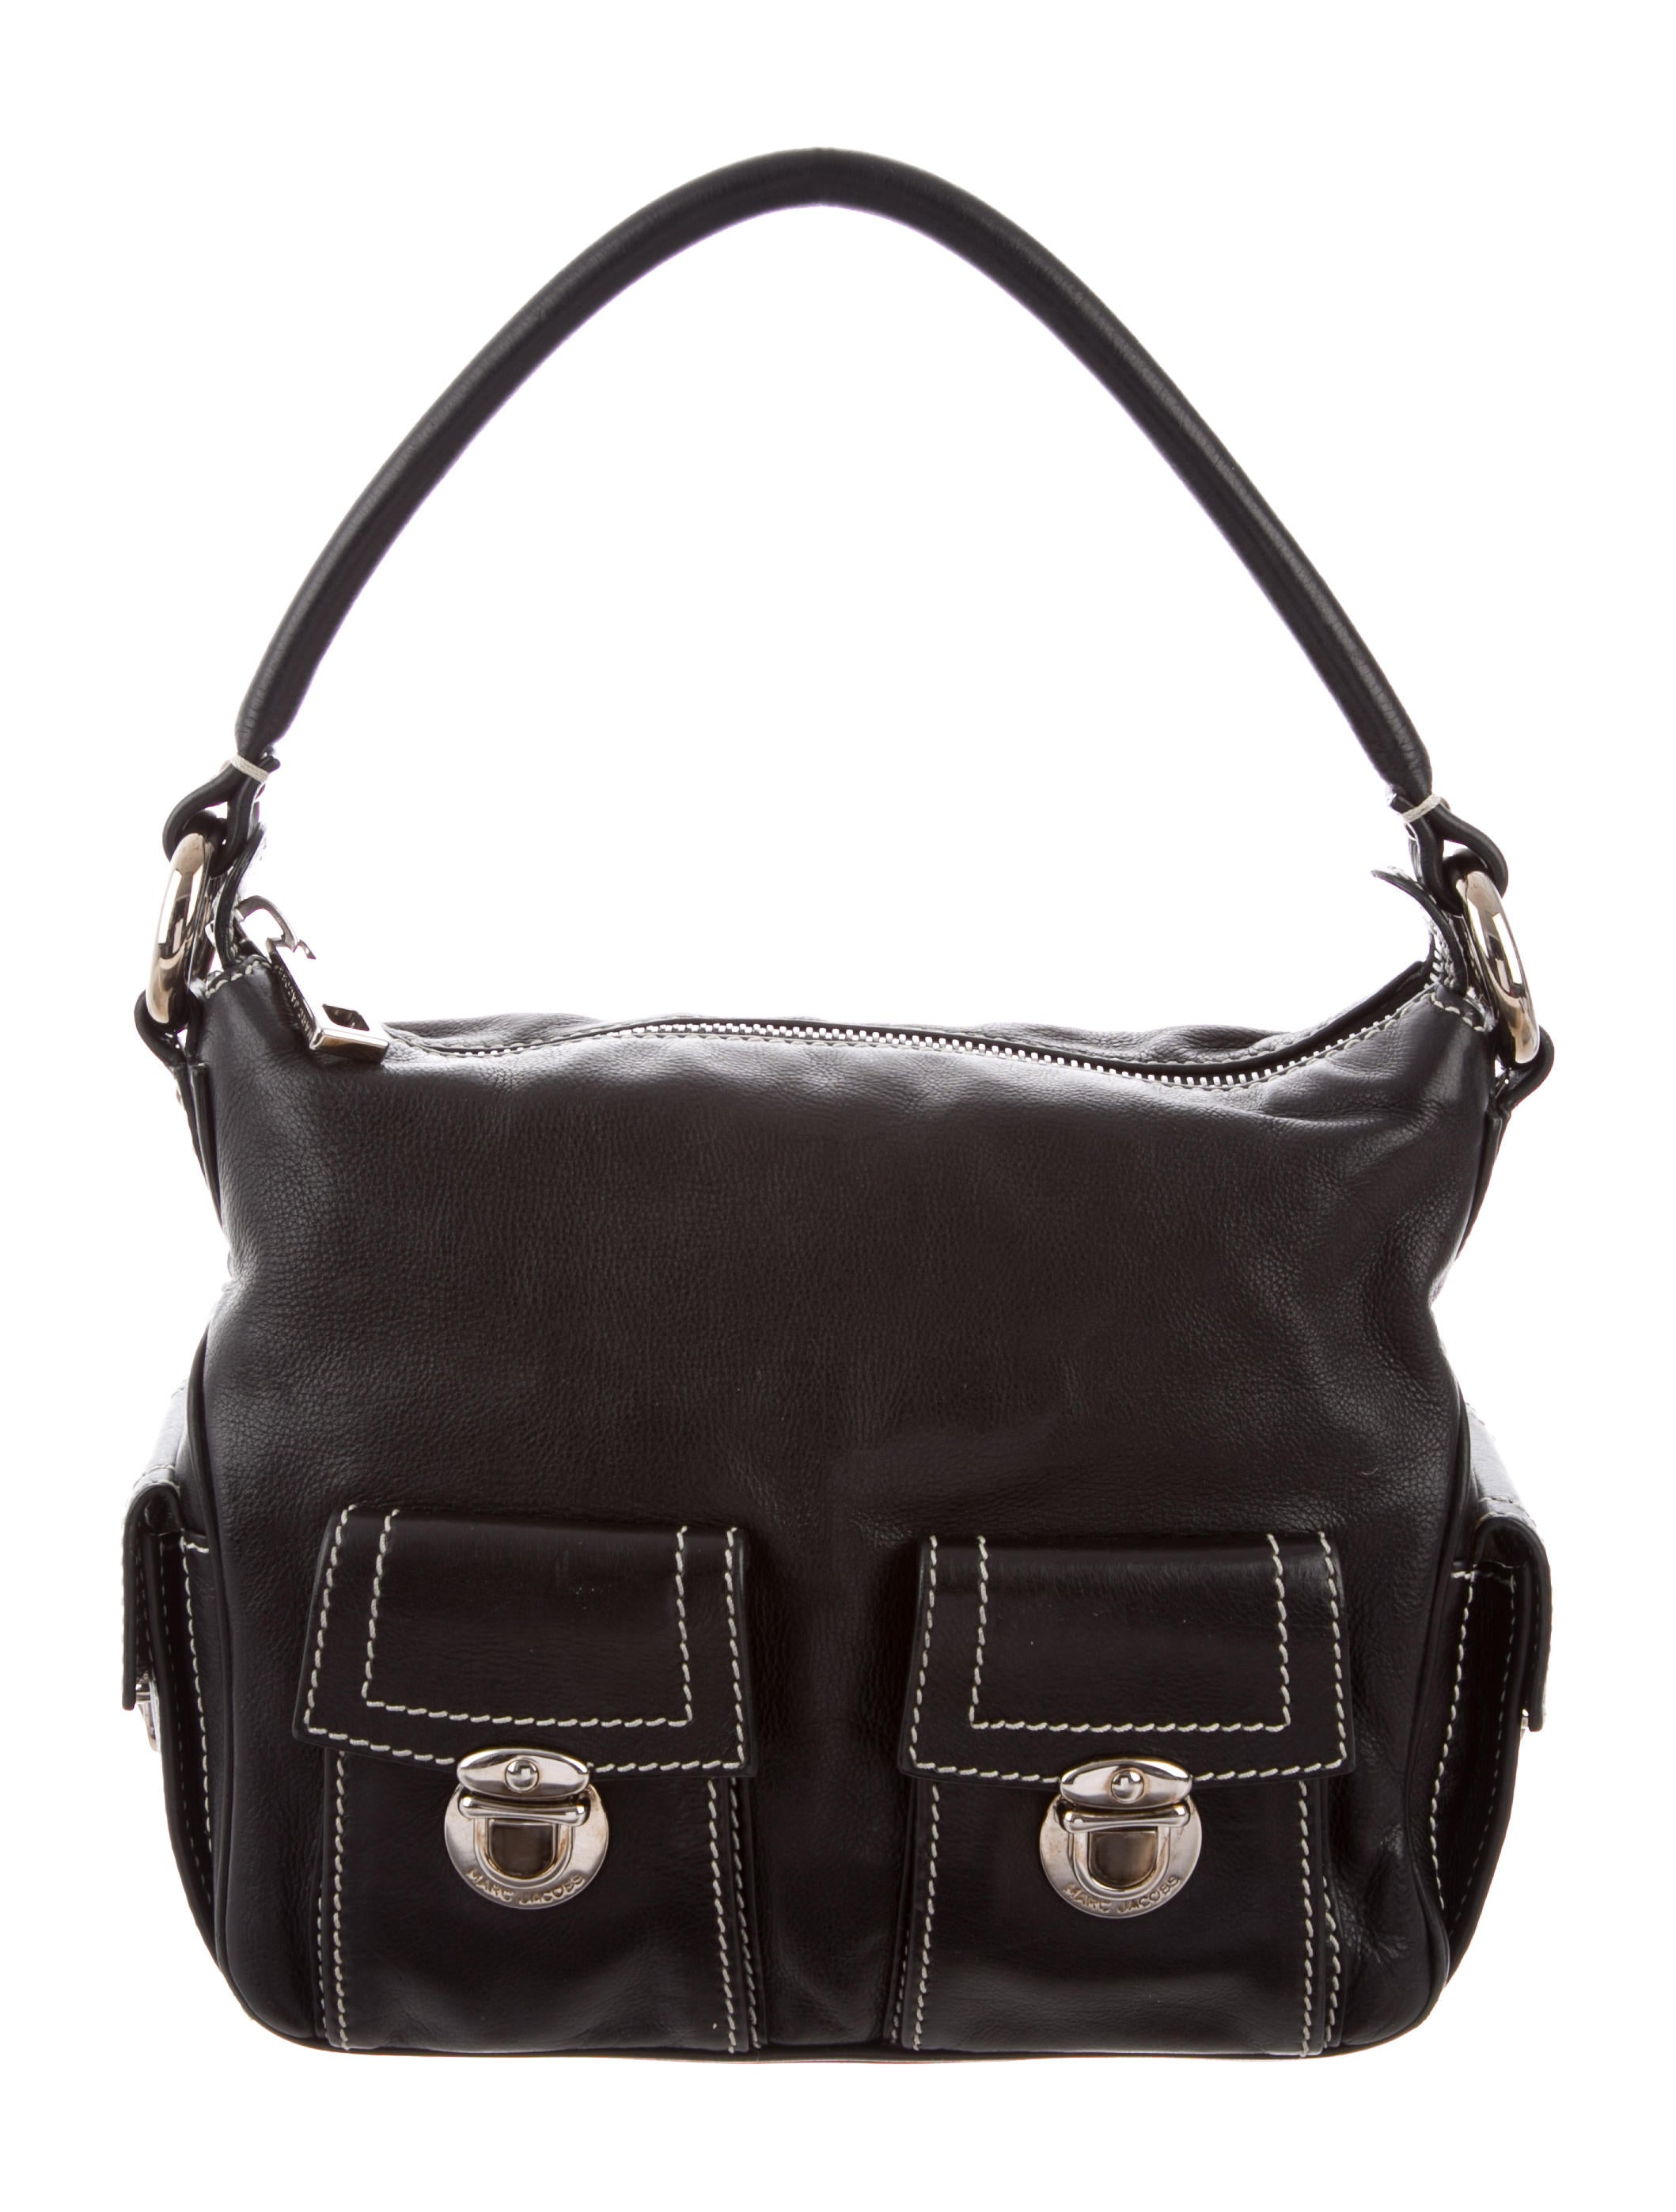 2749e30d5a3 Marc Jacobs Pebbled Leather Shoulder Bag - Handbags - MAR54982 | The ...